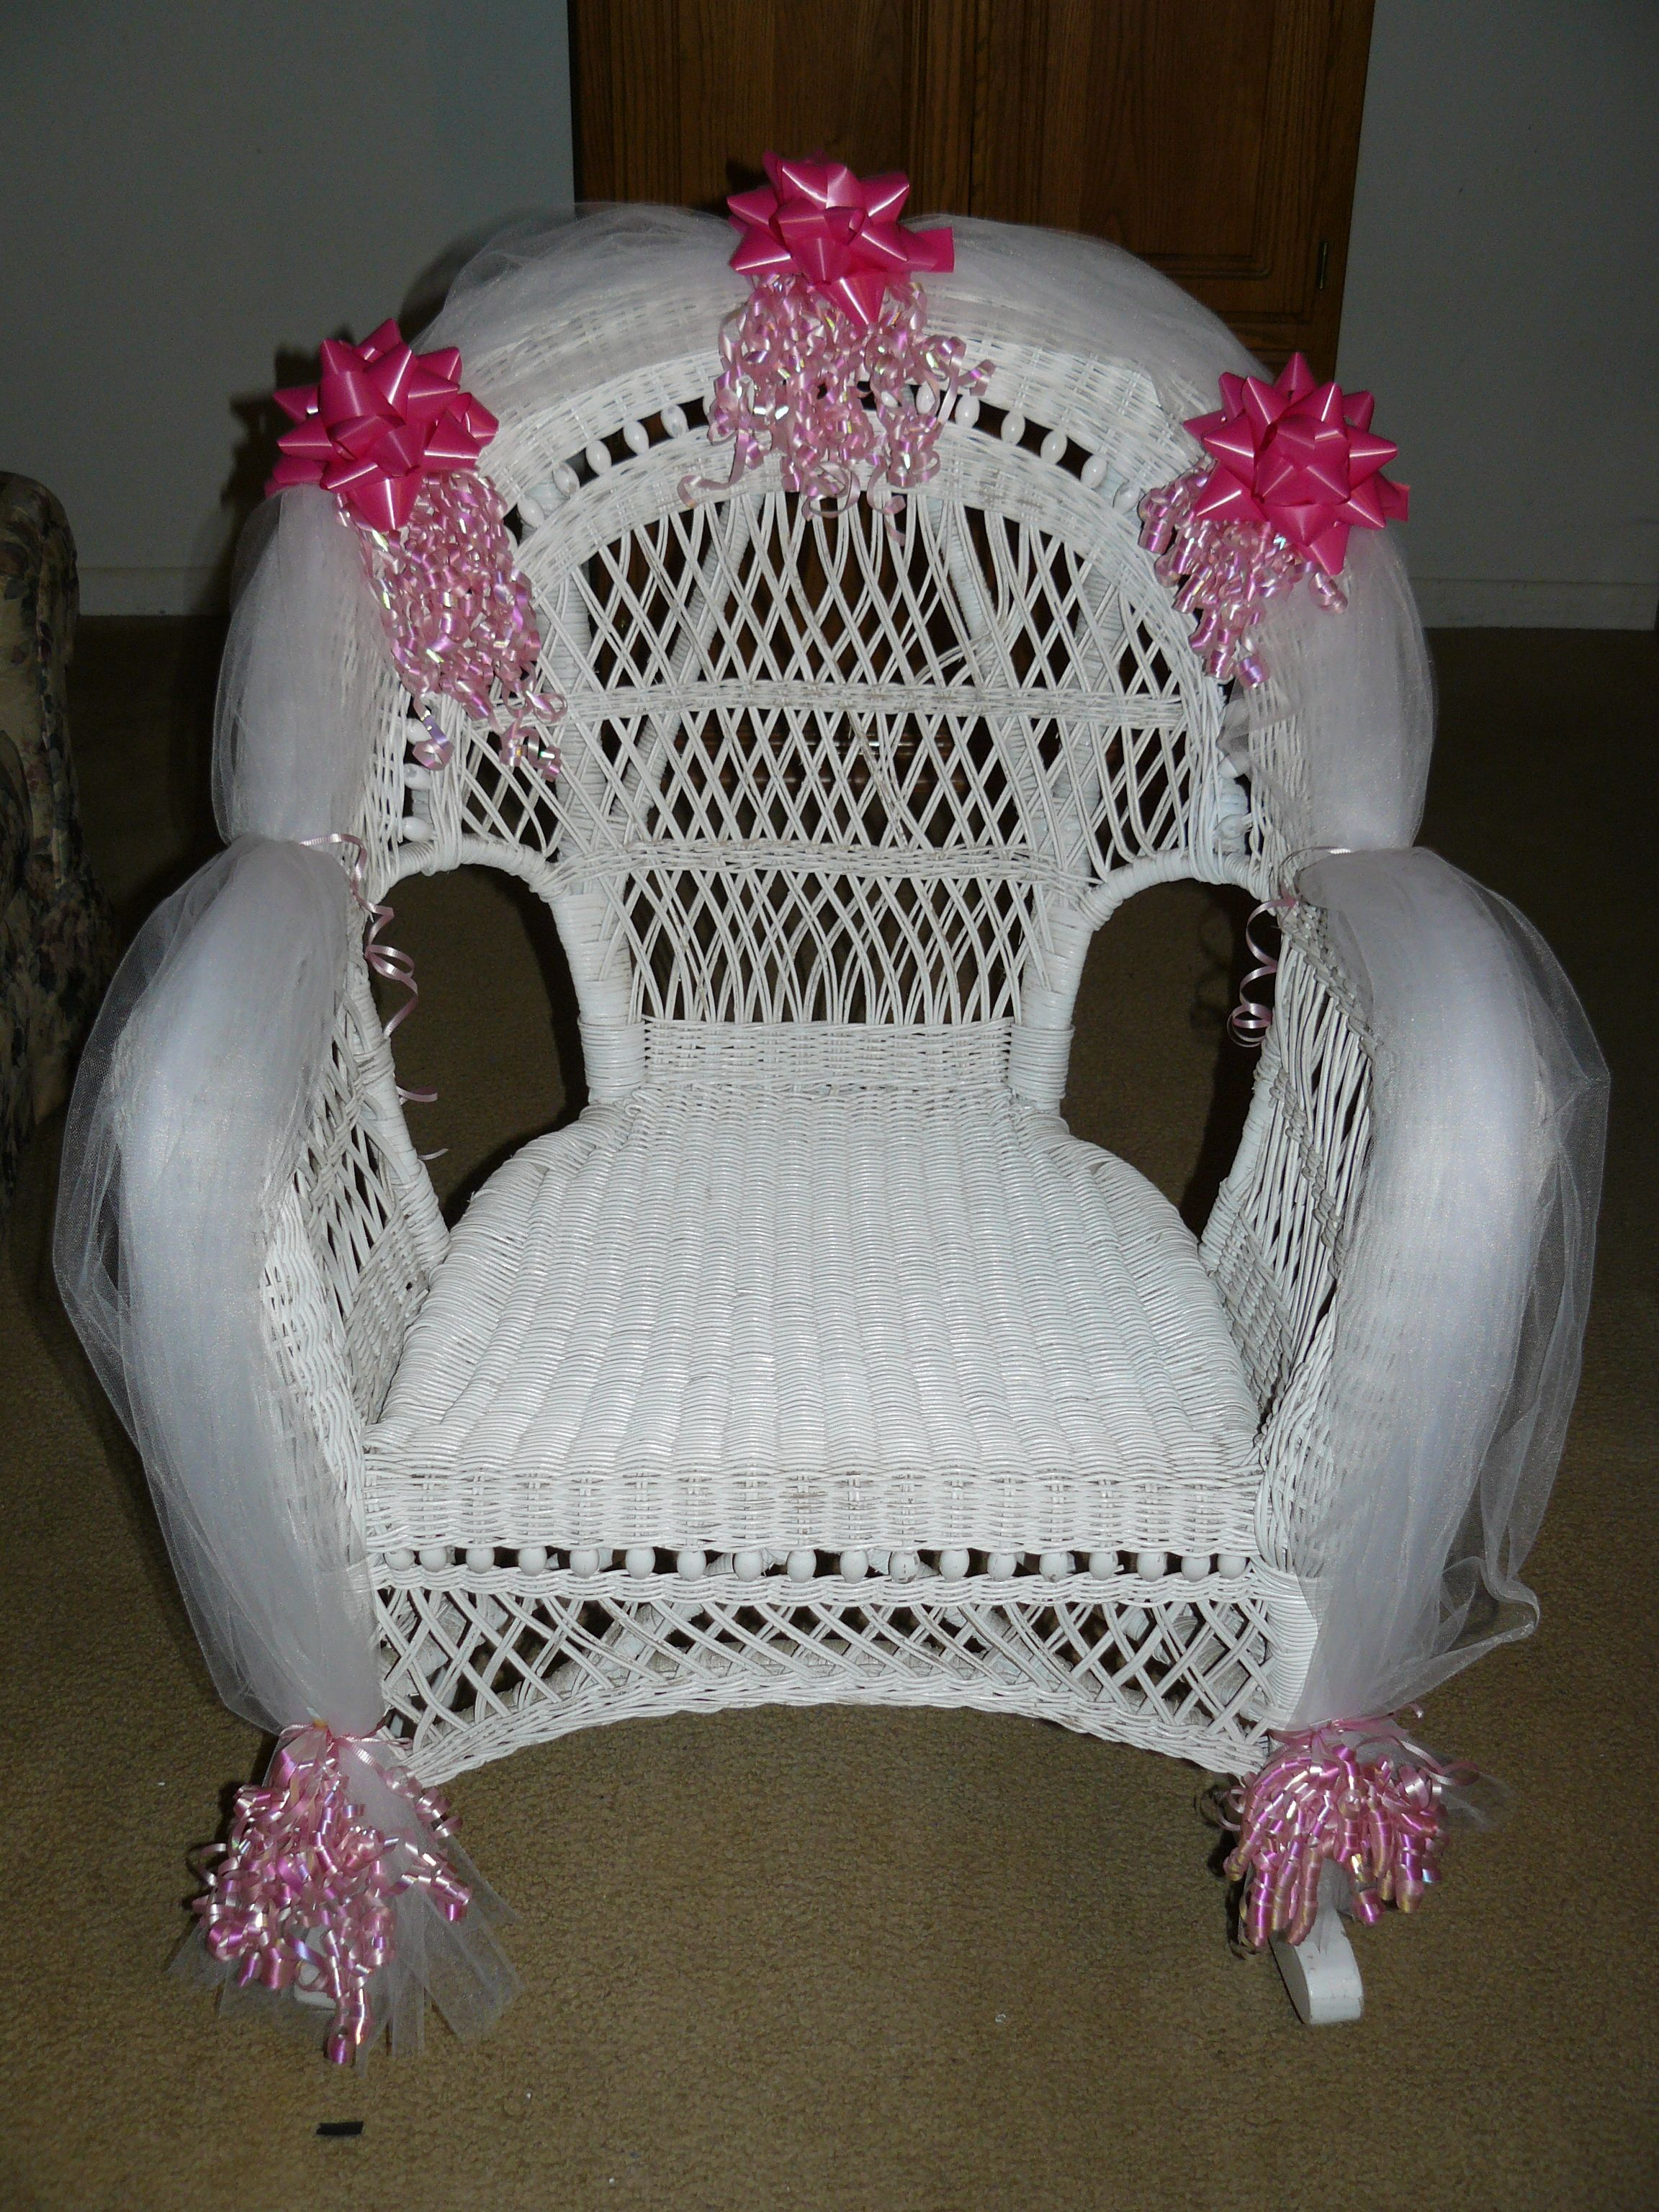 Decorating Chair For Baby Shower Rocking Kids The Mother To Be Things I Have